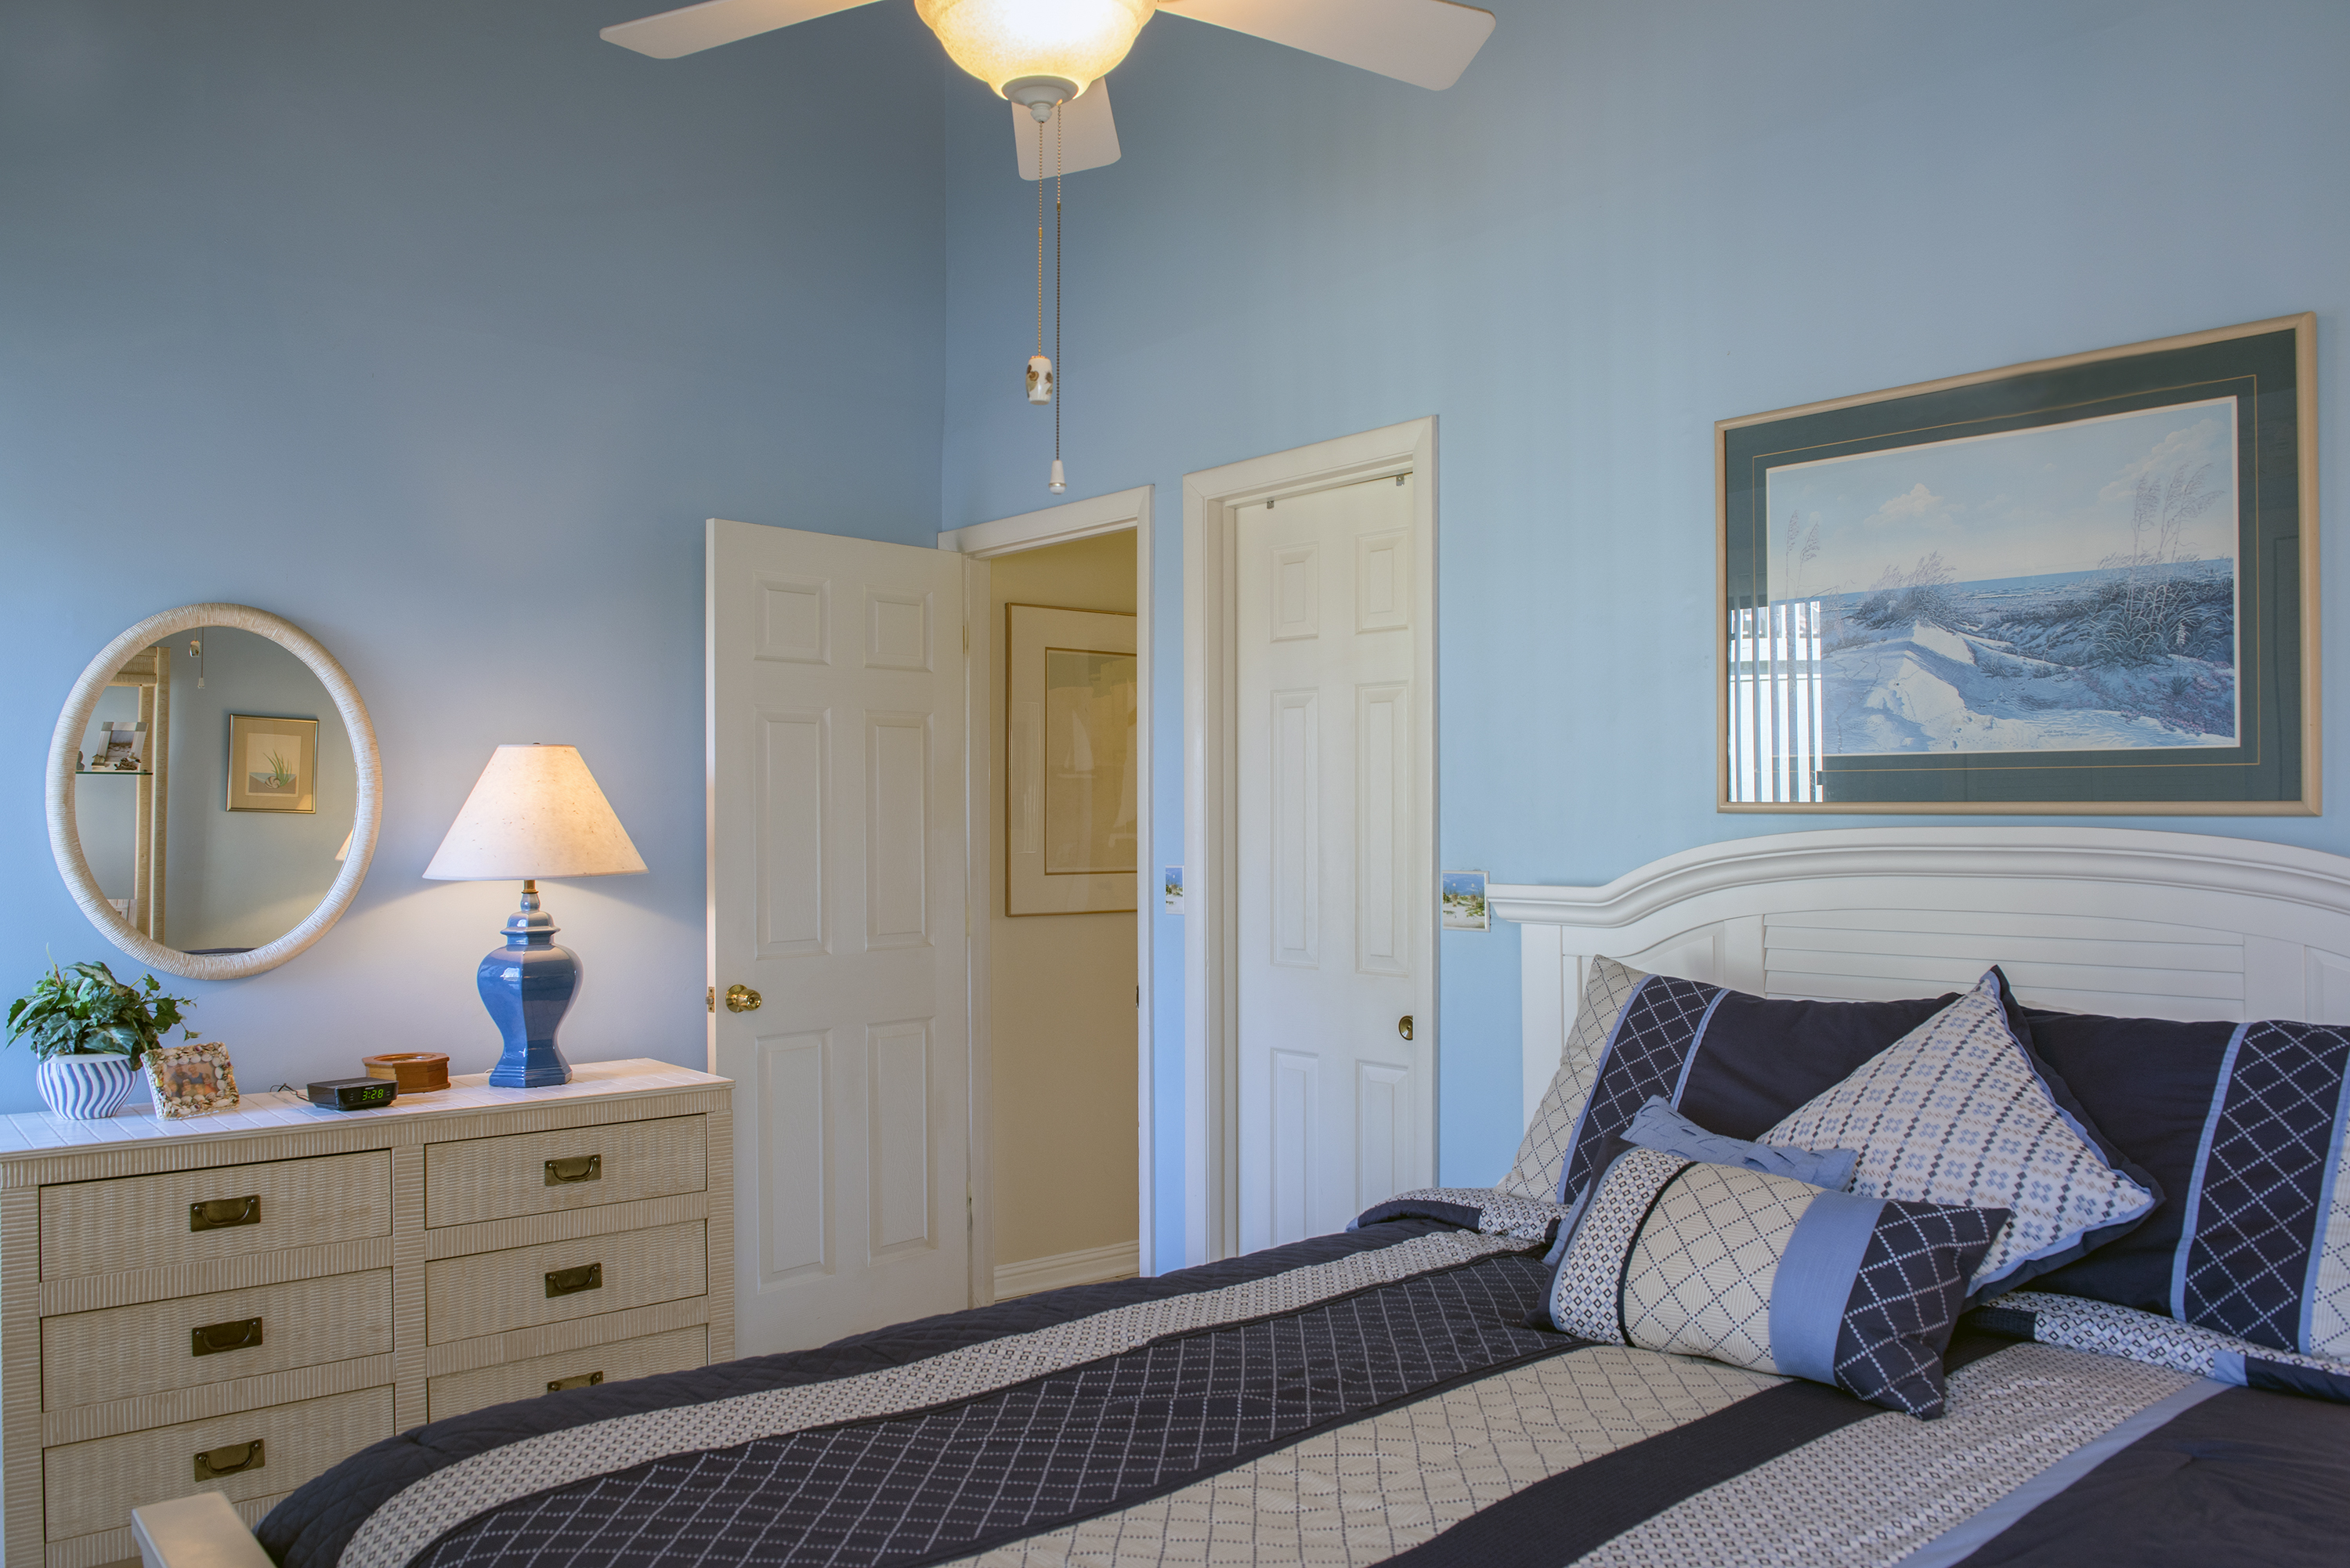 There is a guest bedroom on the first floor with queen bed and access to the full bath.